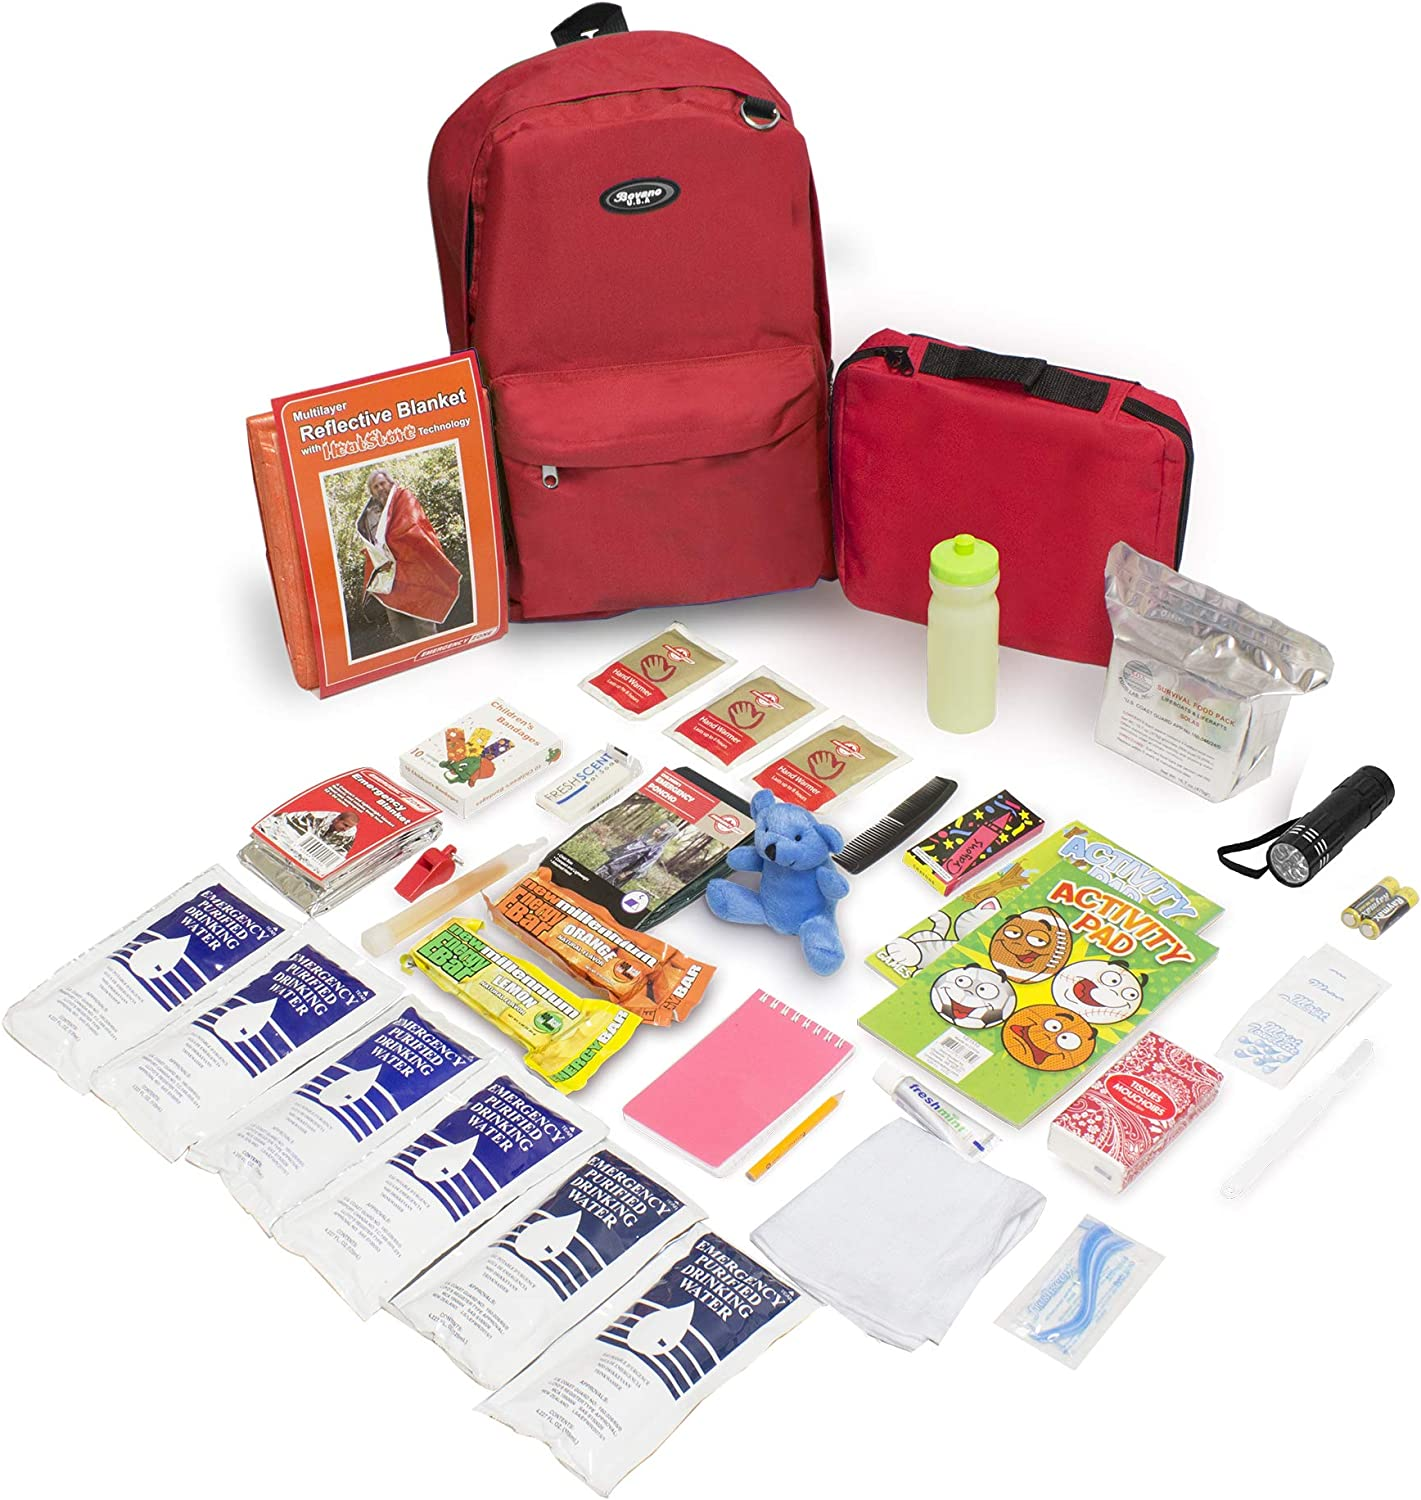 Emergency Zone Keep-Me-Safe Children's Deluxe 72-Hour Emergency Survival Kit | Perfect Way to Prepare Your Family for Disasters Like Hurricanes, Earthquake, Wildfires, and More